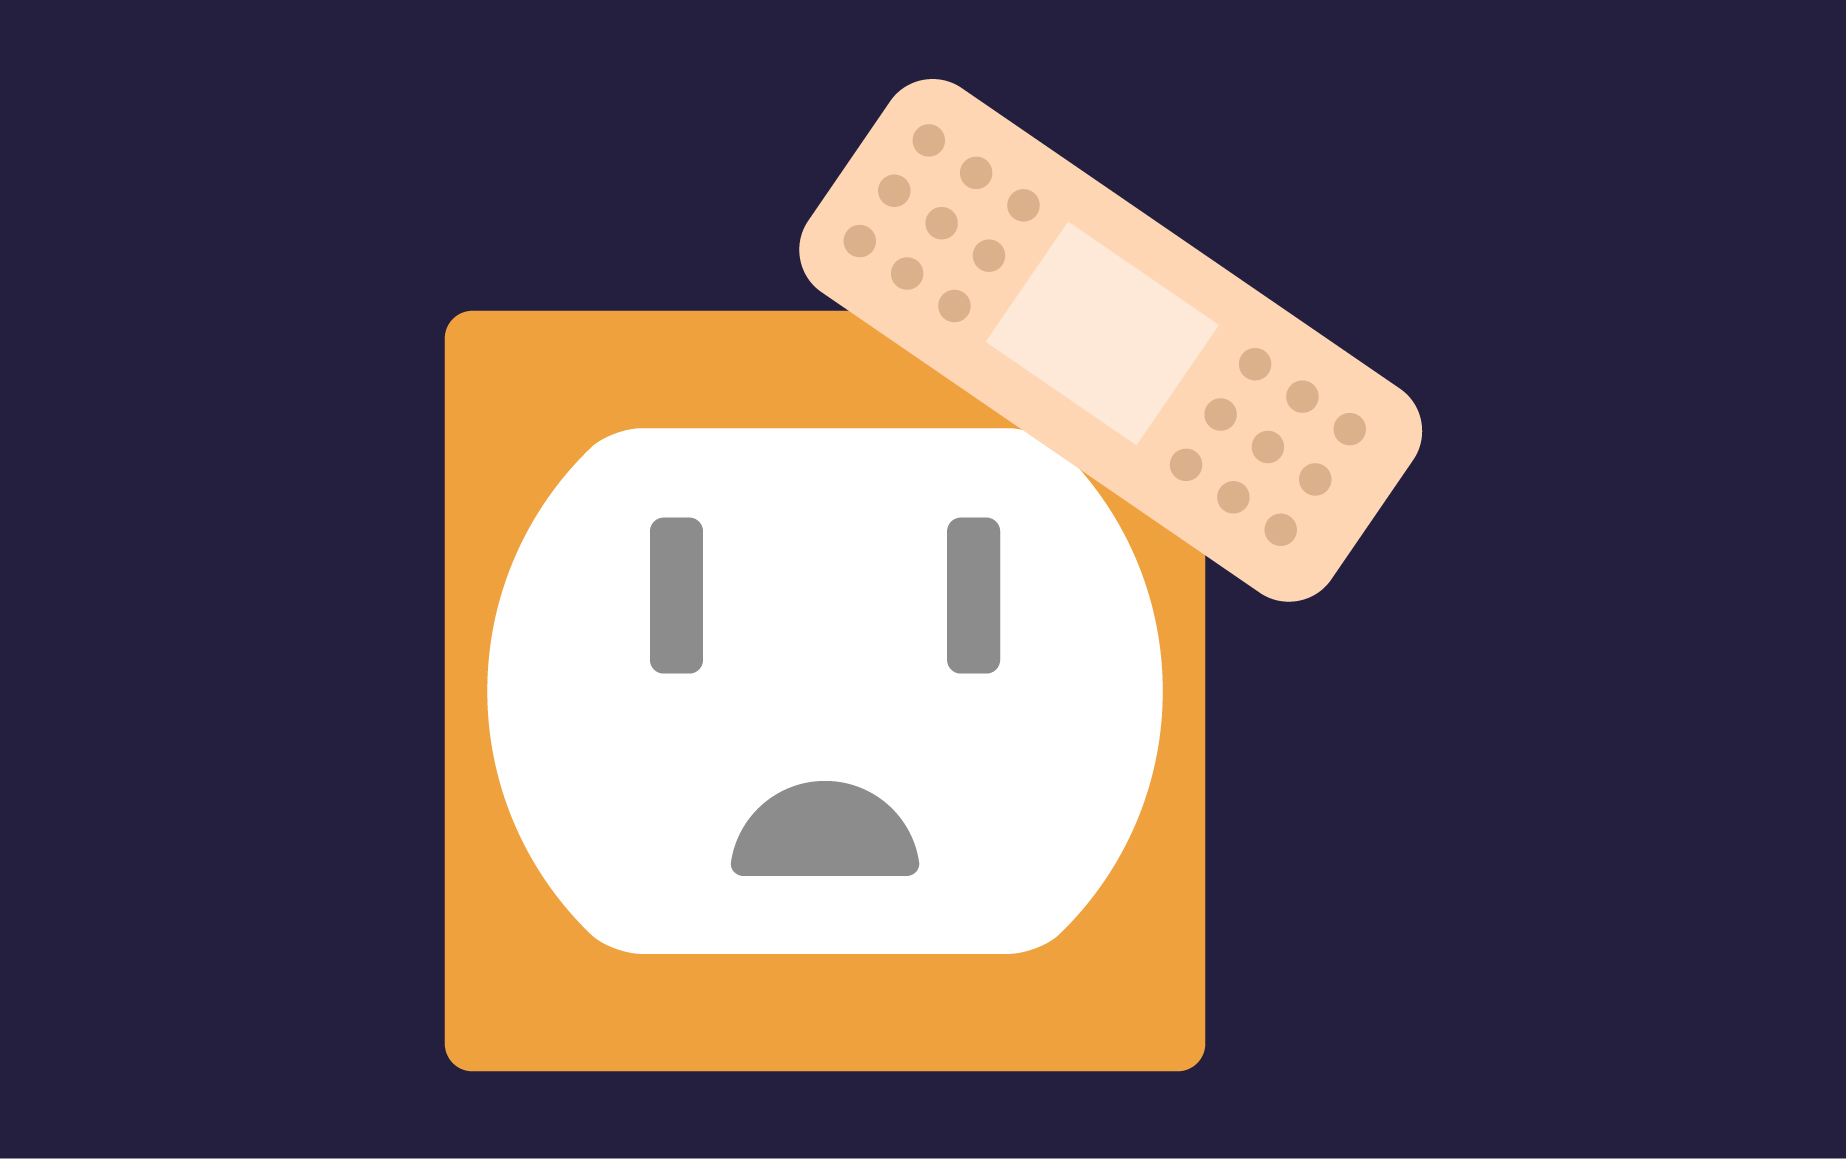 Illustration of a plug with a plaster on it